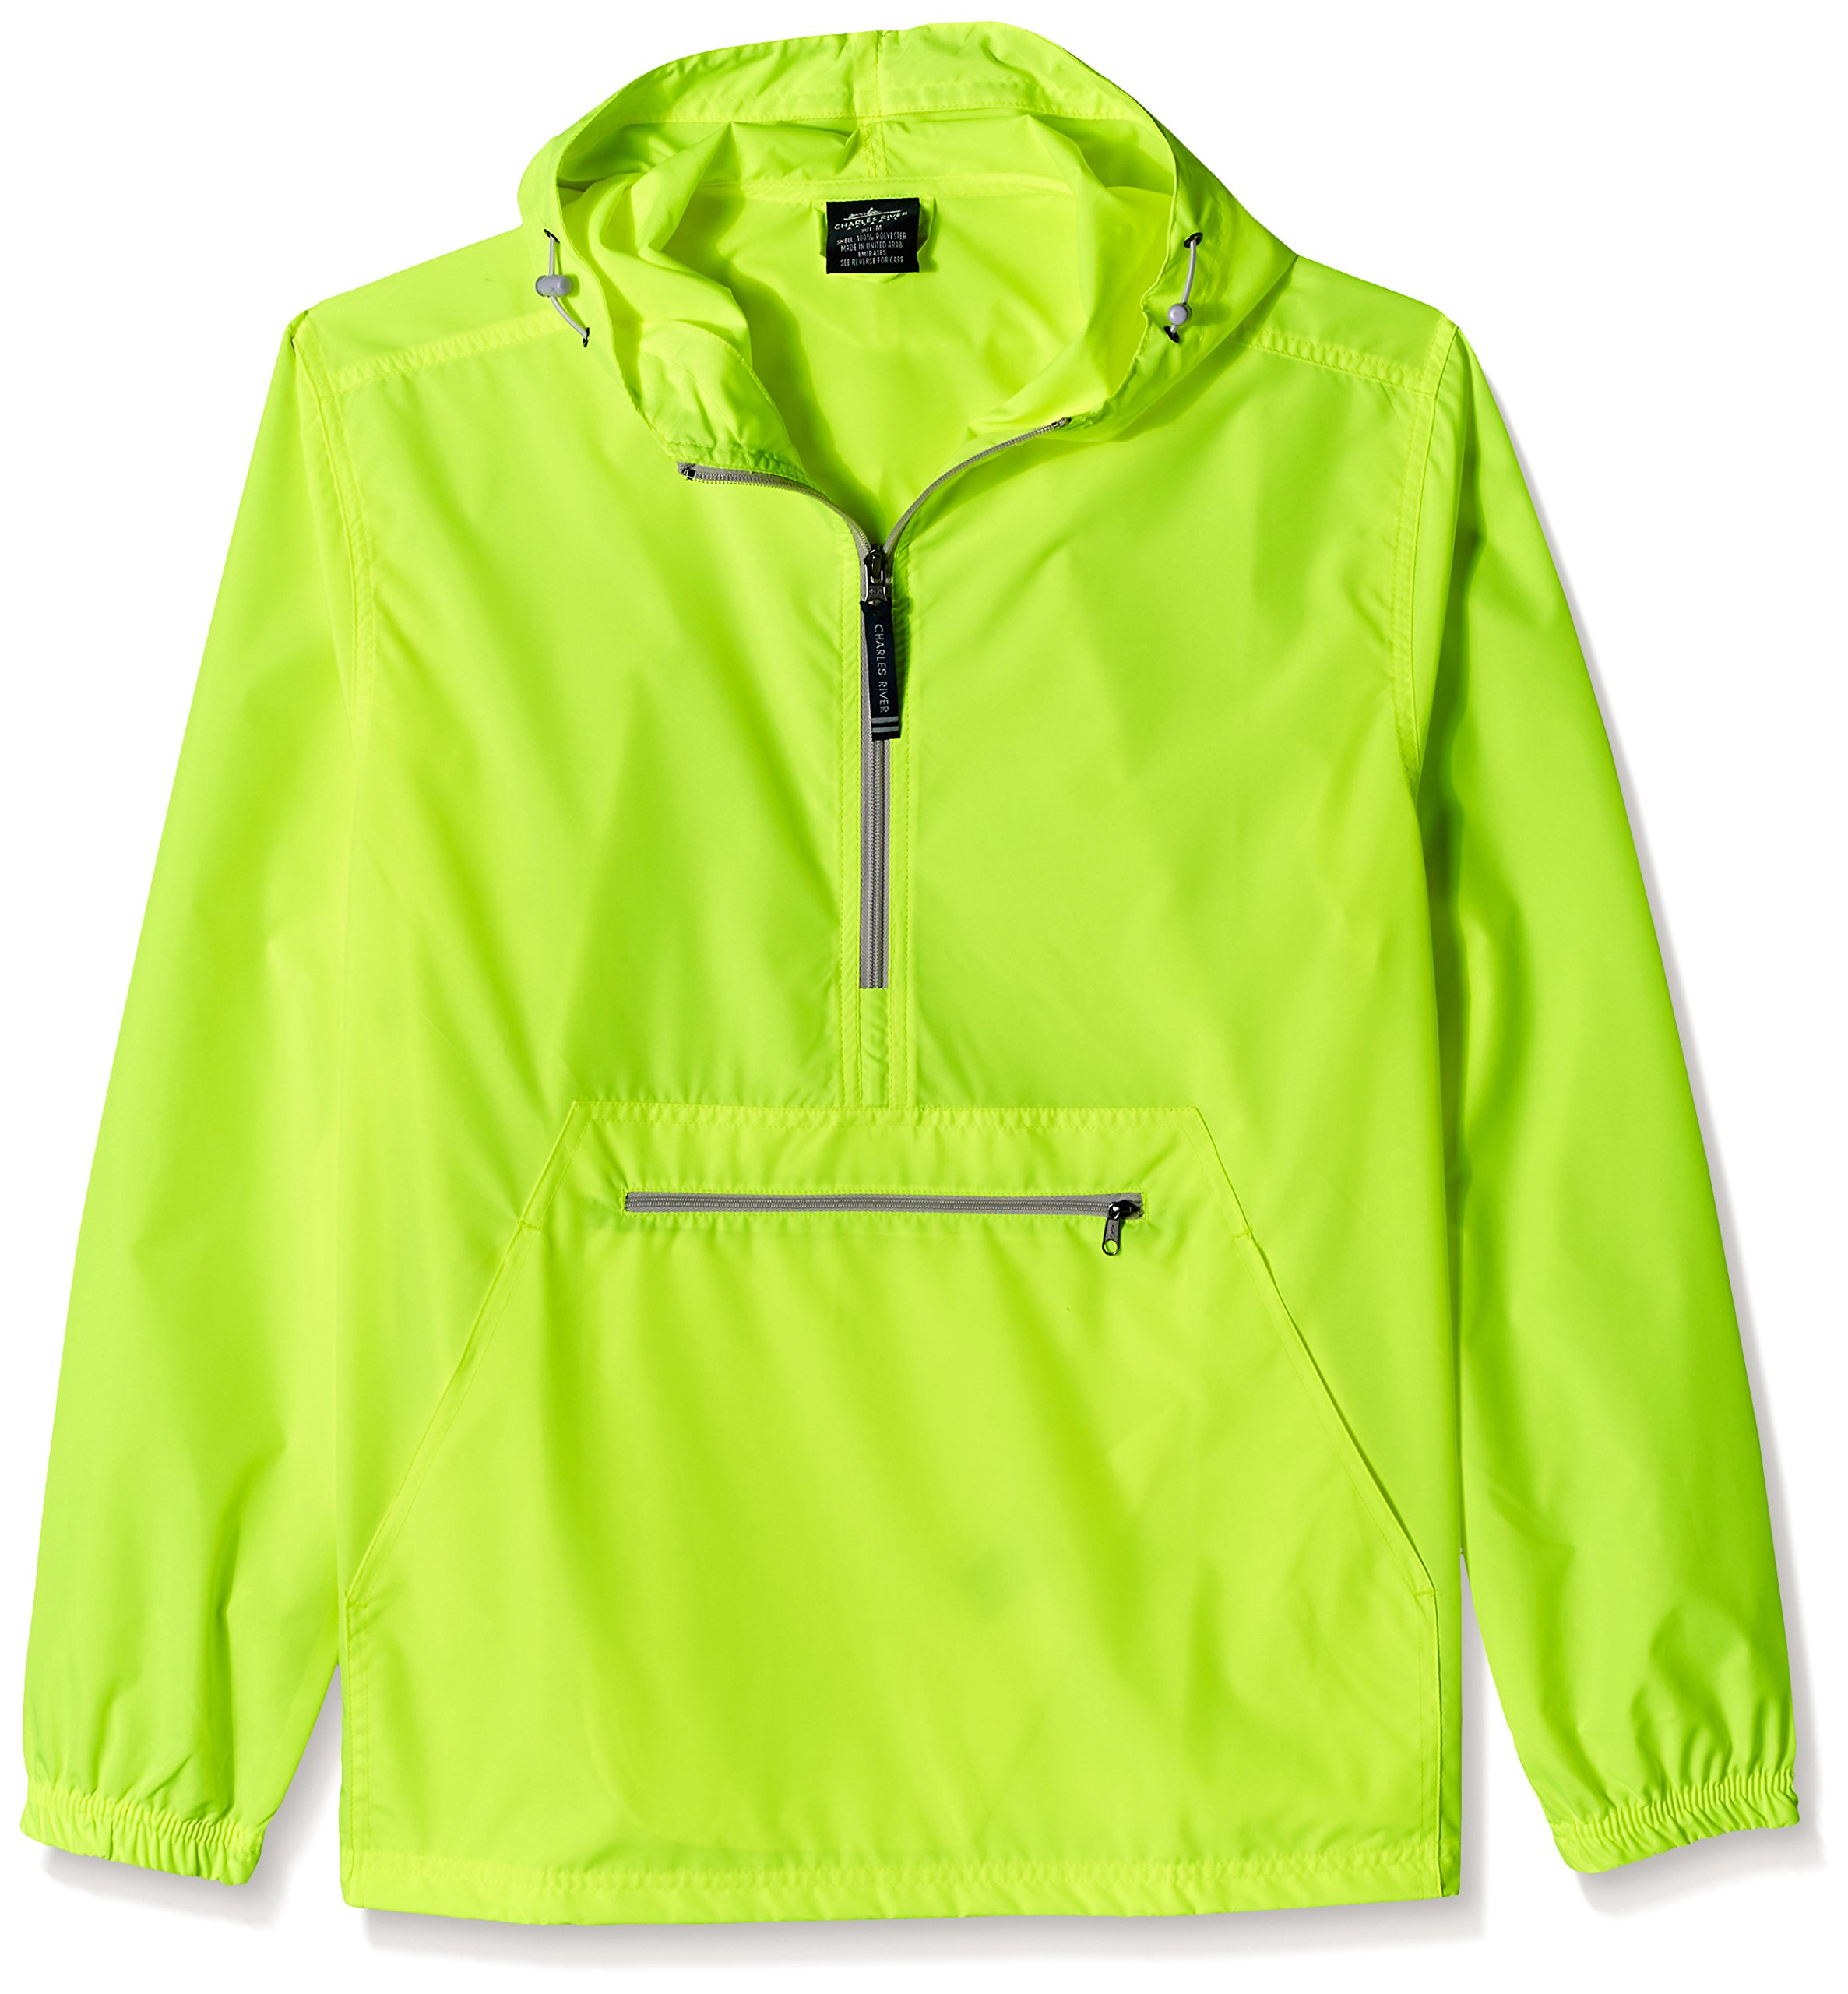 Charles River Apparel Unisex-Adults Pack-n-Go Windbreaker Pullover, Neon Yellow, Large